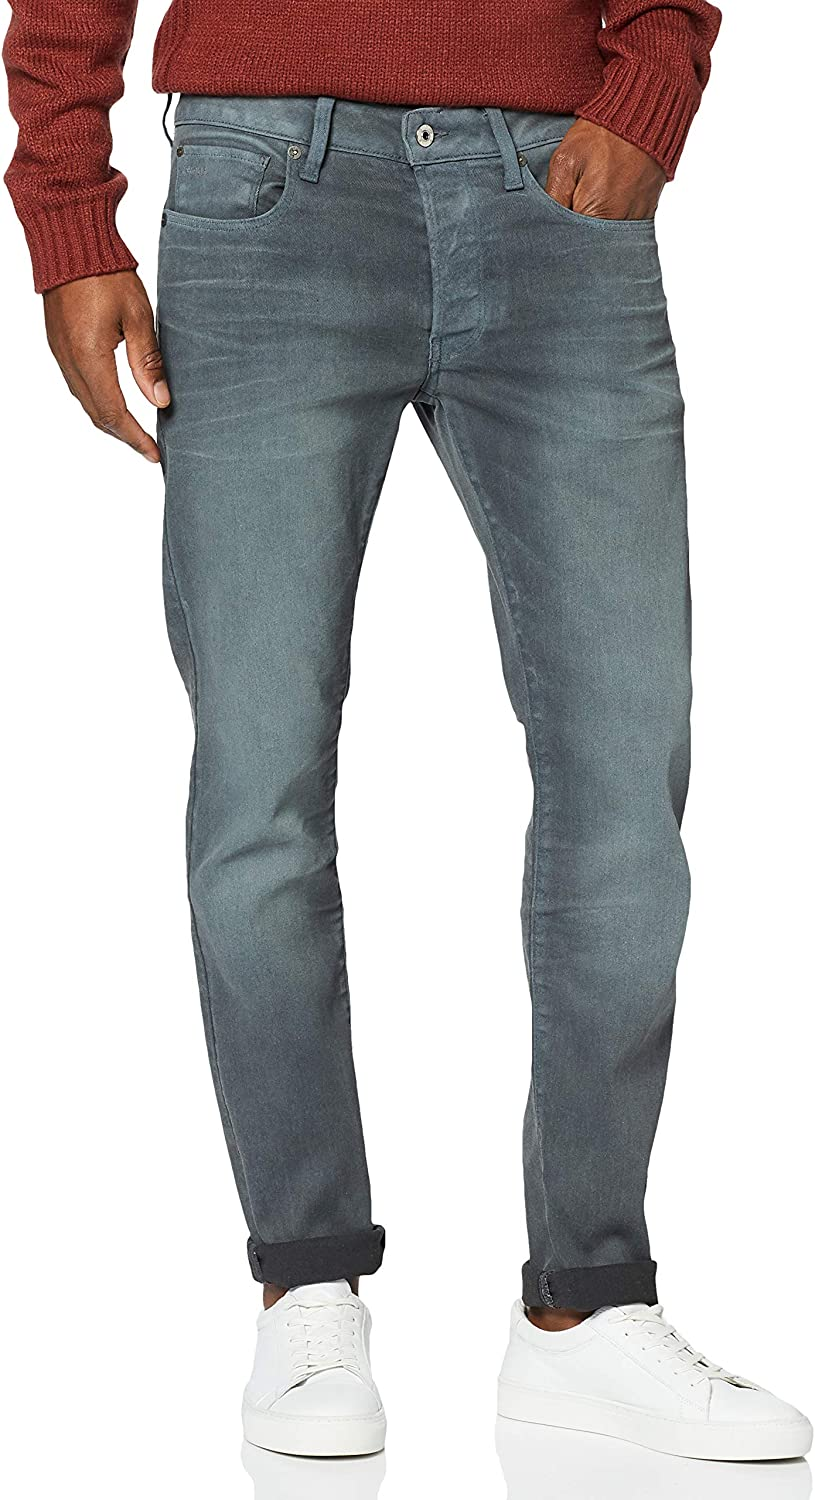 G-STAR RAW 3301 Slim Fit Jeans Hombre